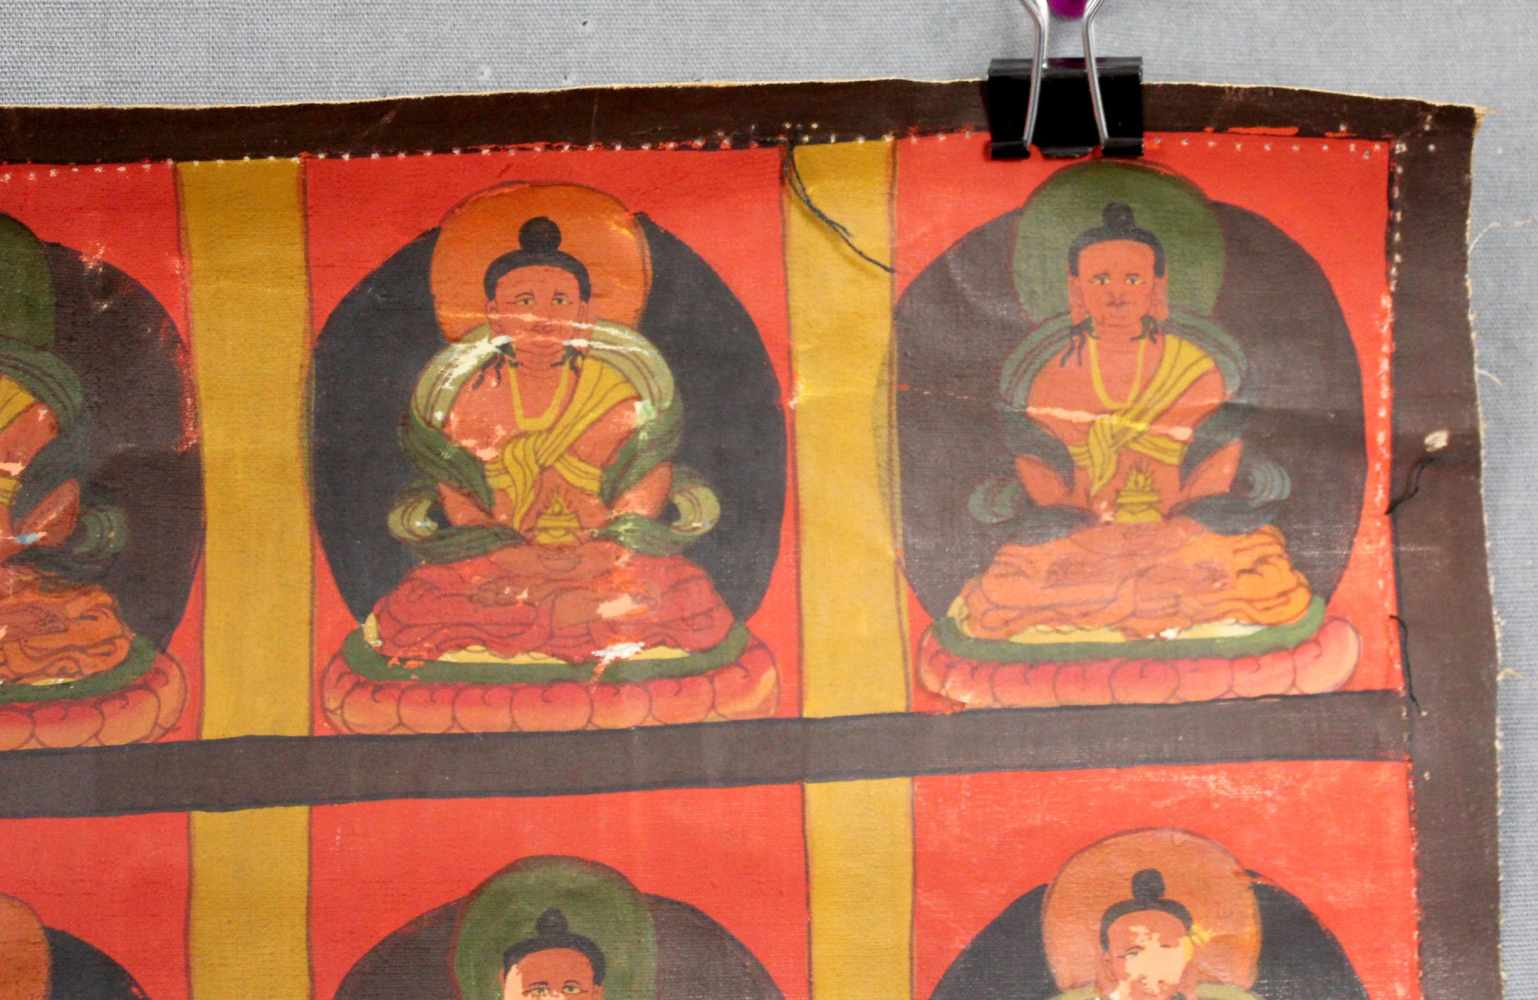 Lot 49 - Buddha mit 38 Gurus, Thangka, China / Tibet alt.59,5 cm x 45,5 cm. Gemälde.Buddha with 38 gurus,